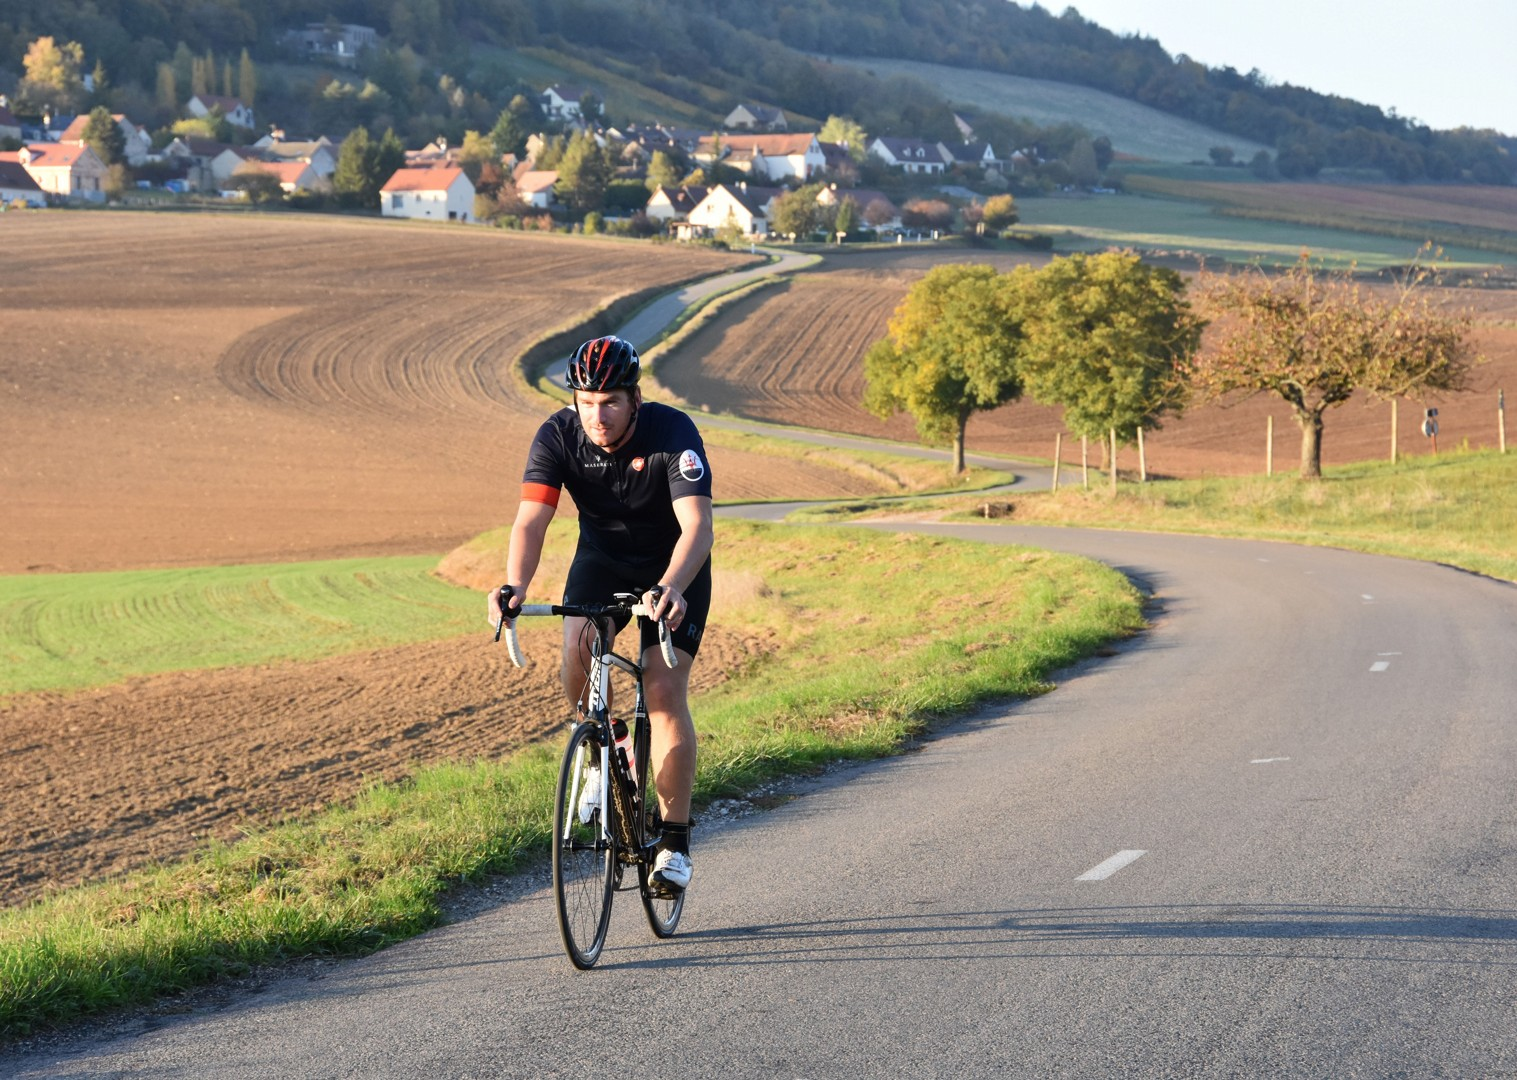 guided-road-cycling-holiday-belgium-and-france-bruges-to-bordeaux.JPG - Belgium and France - Bruges to Bordeaux - Guided Road Cycling Holiday - Road Cycling